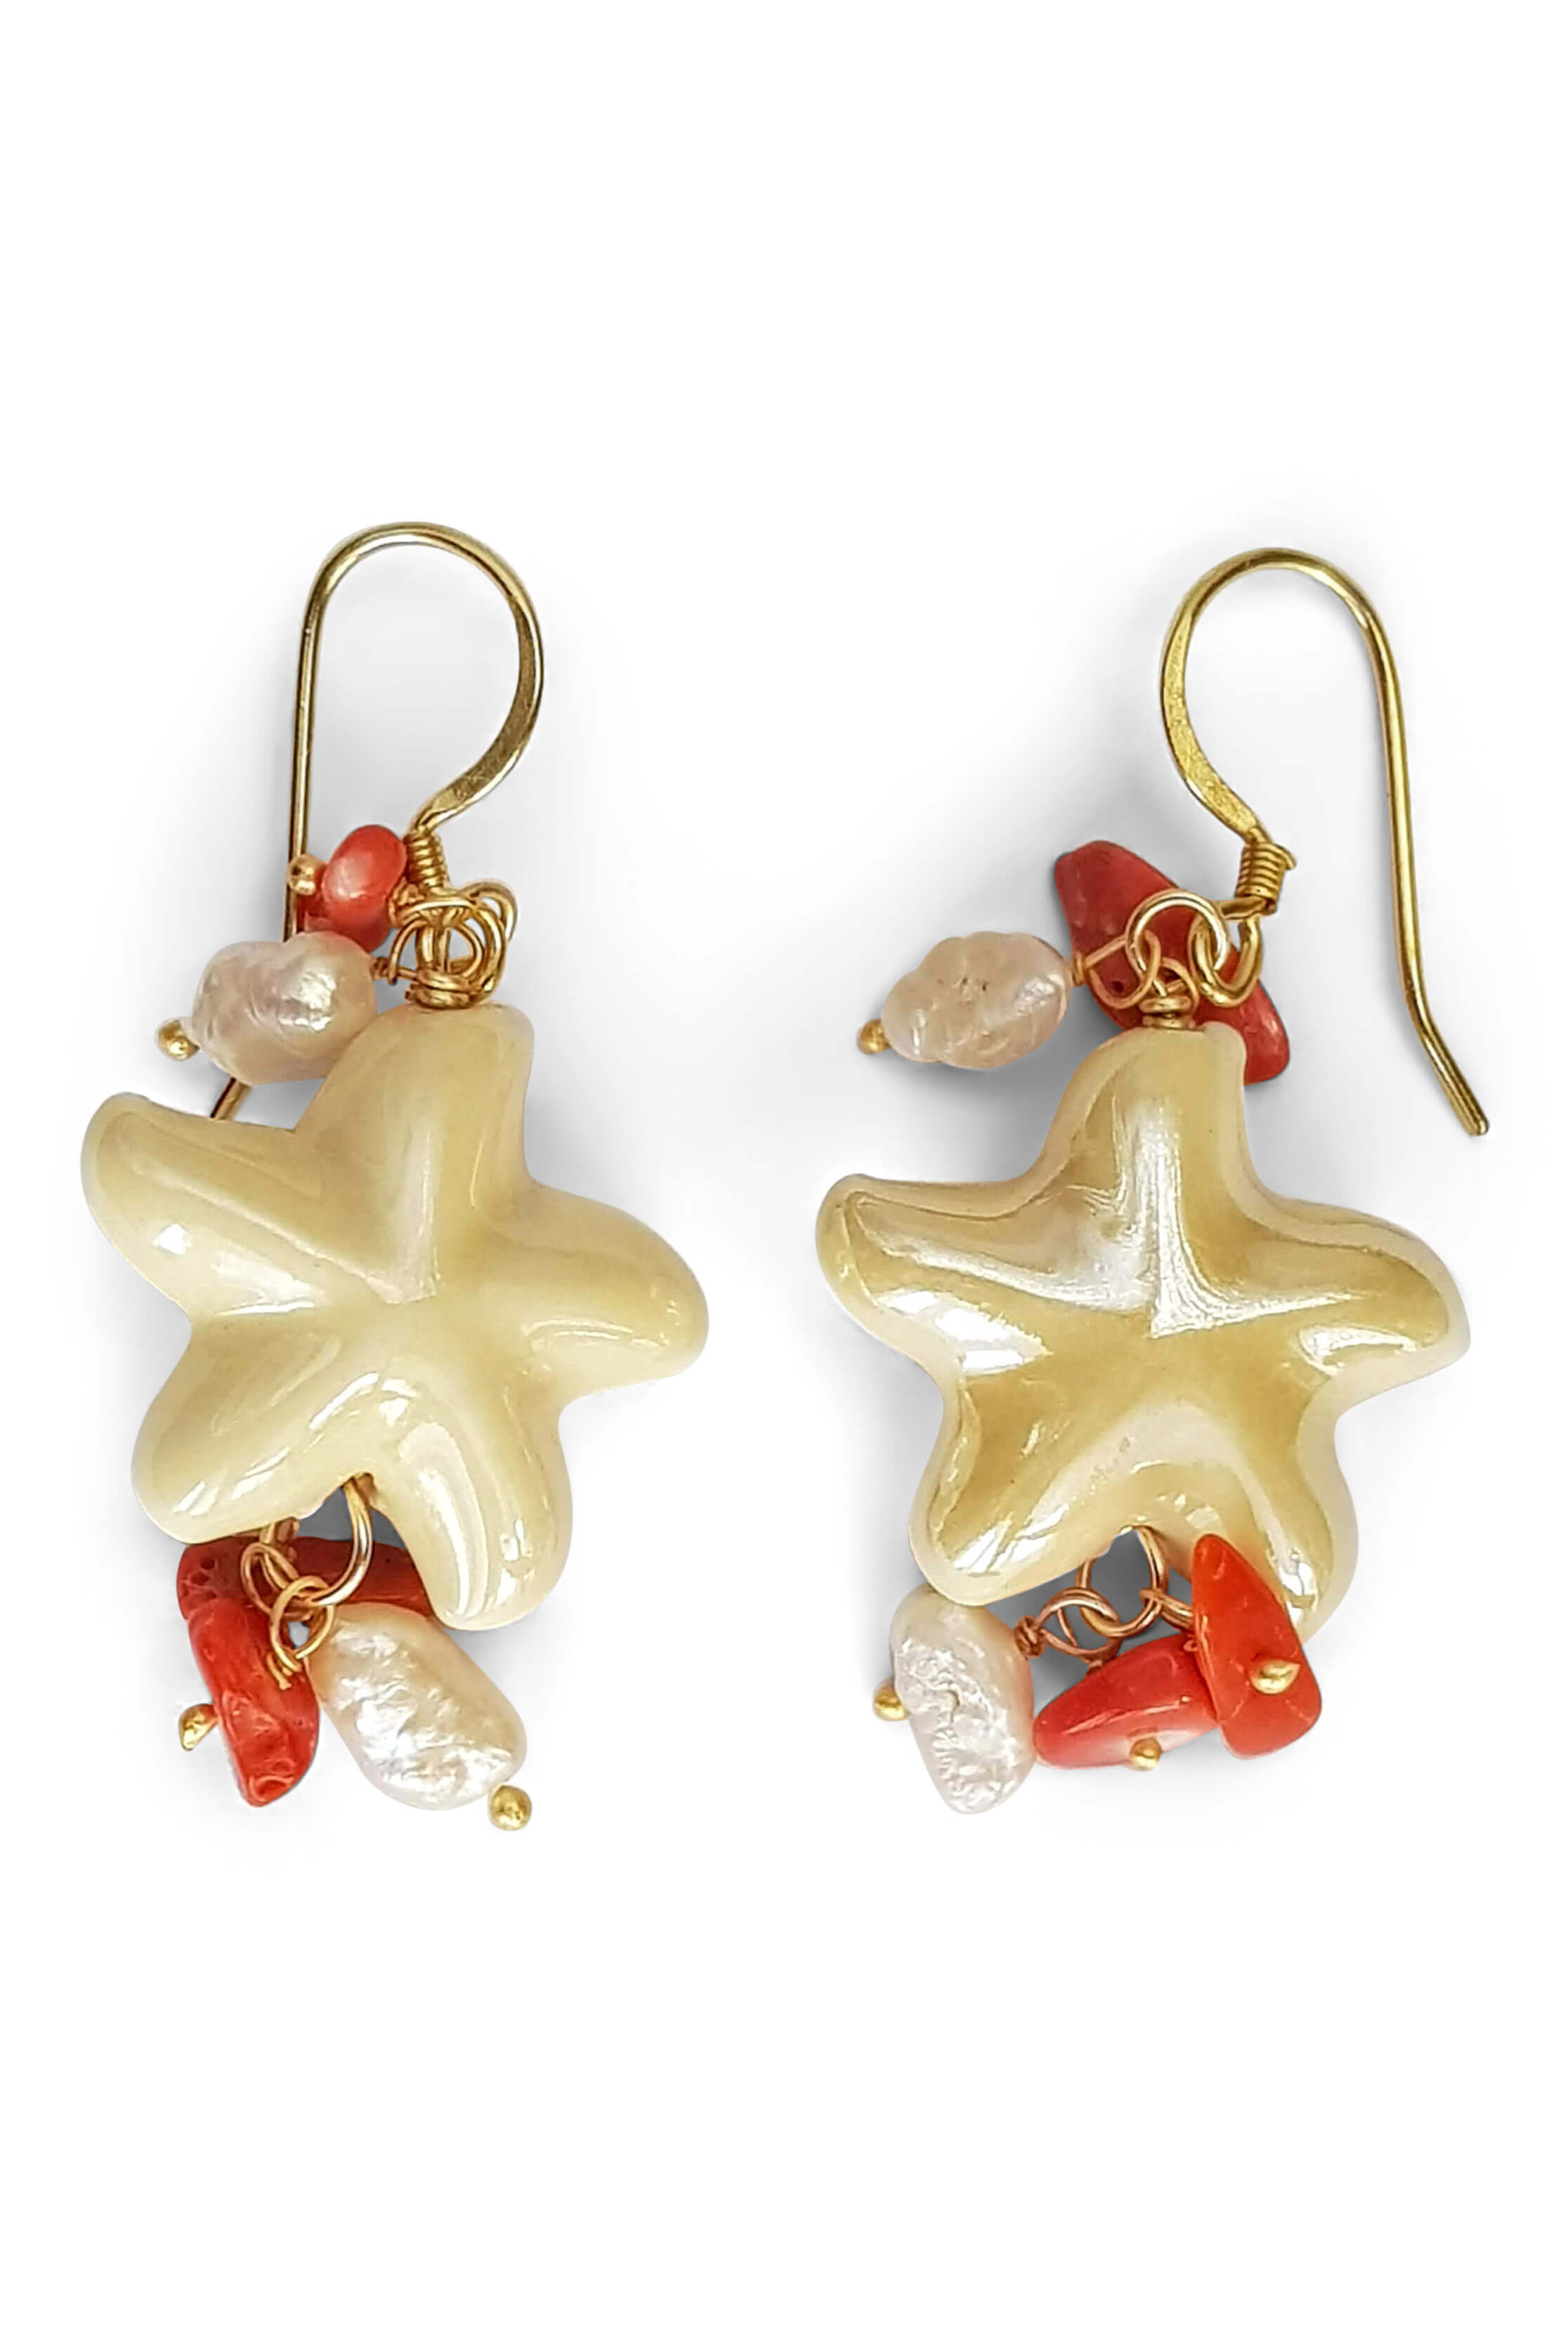 earrings with vanilla colored porcelain sea stars, corals and pearls CAPRI